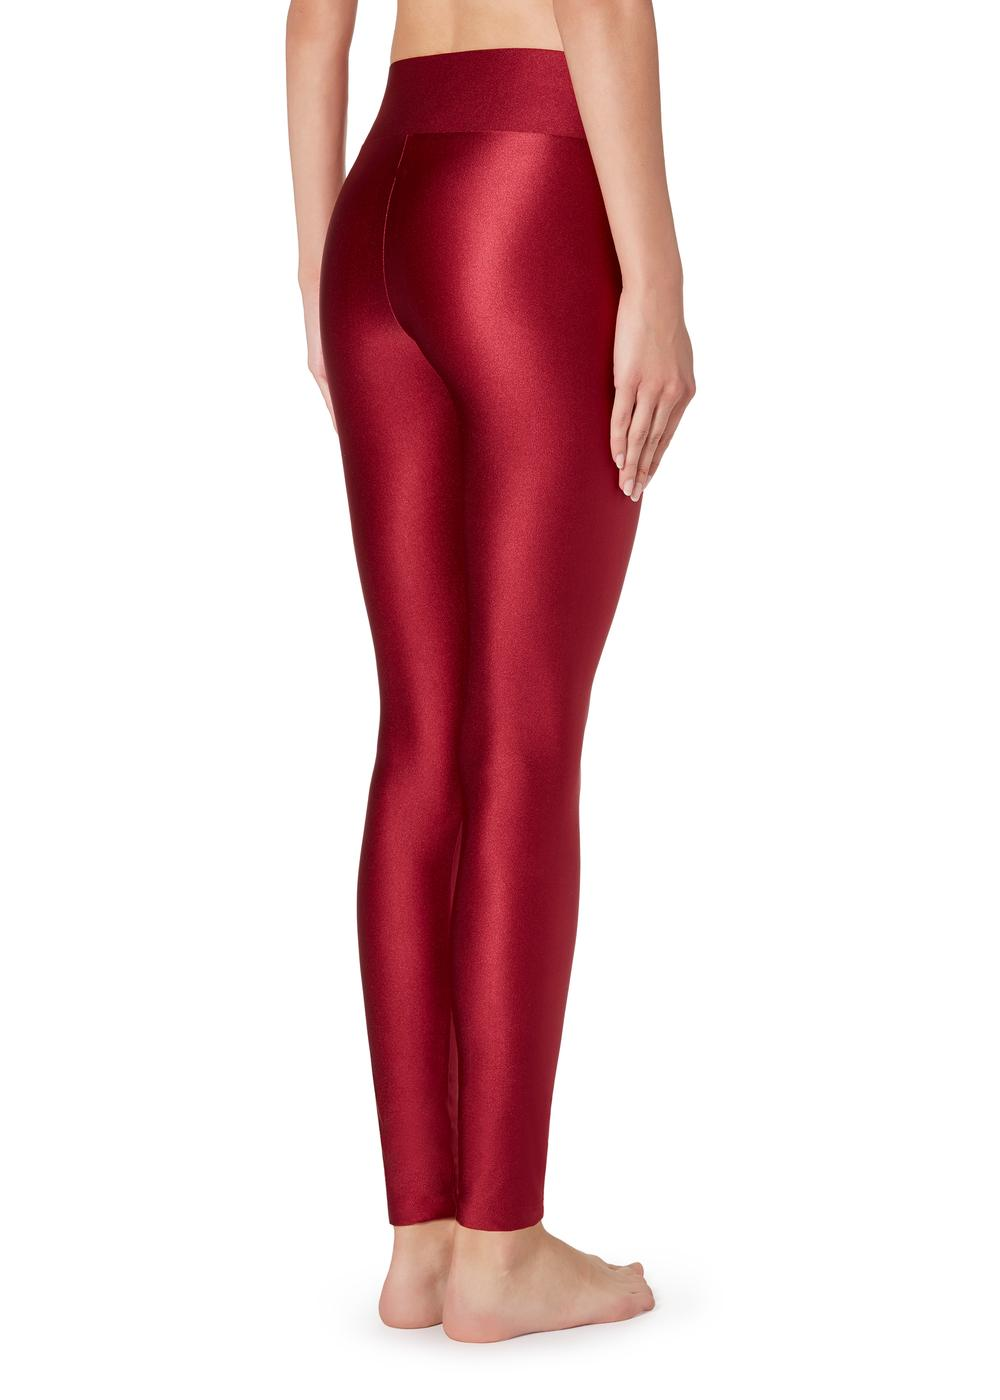 Superglänzende Leggings